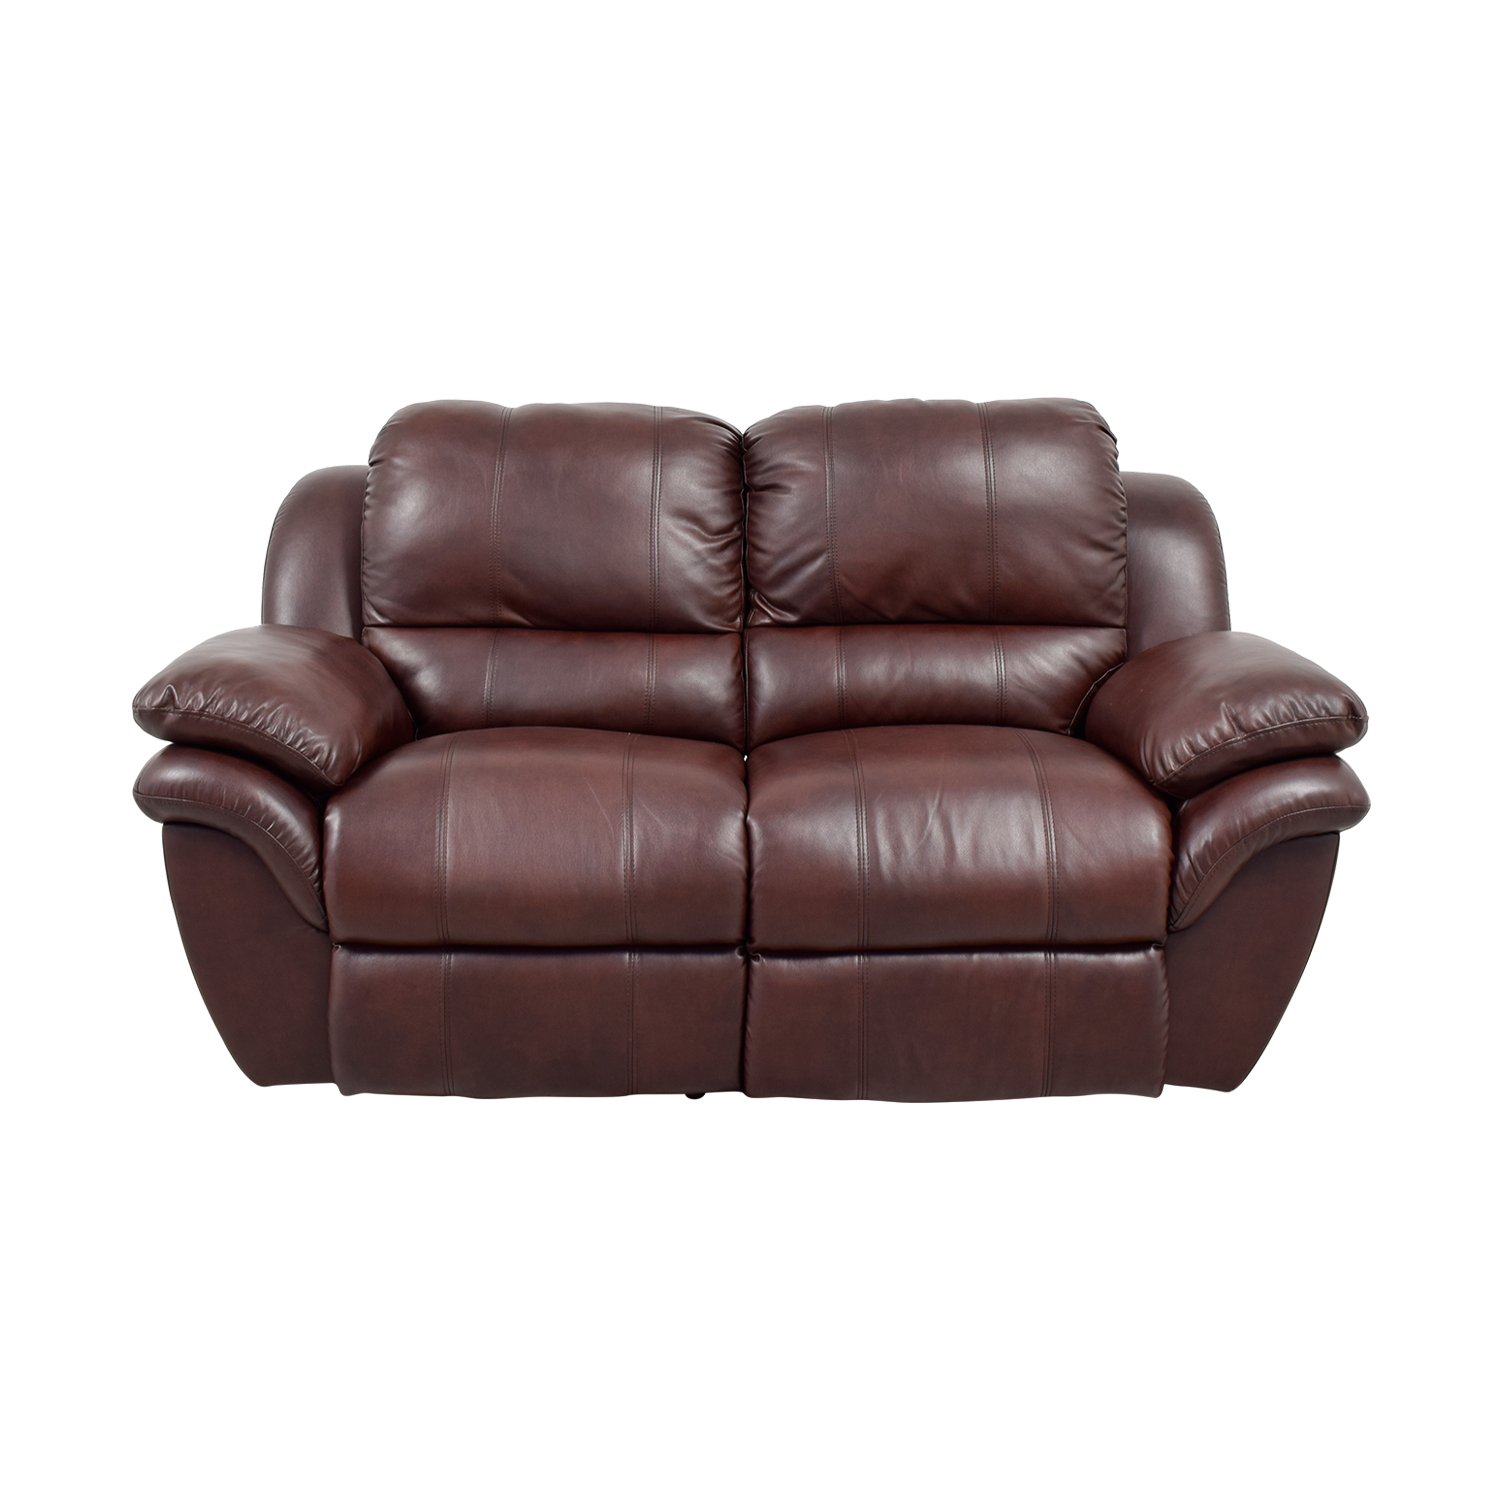 Bob's Furniture Brown Leather Recliner / Classic Sofas